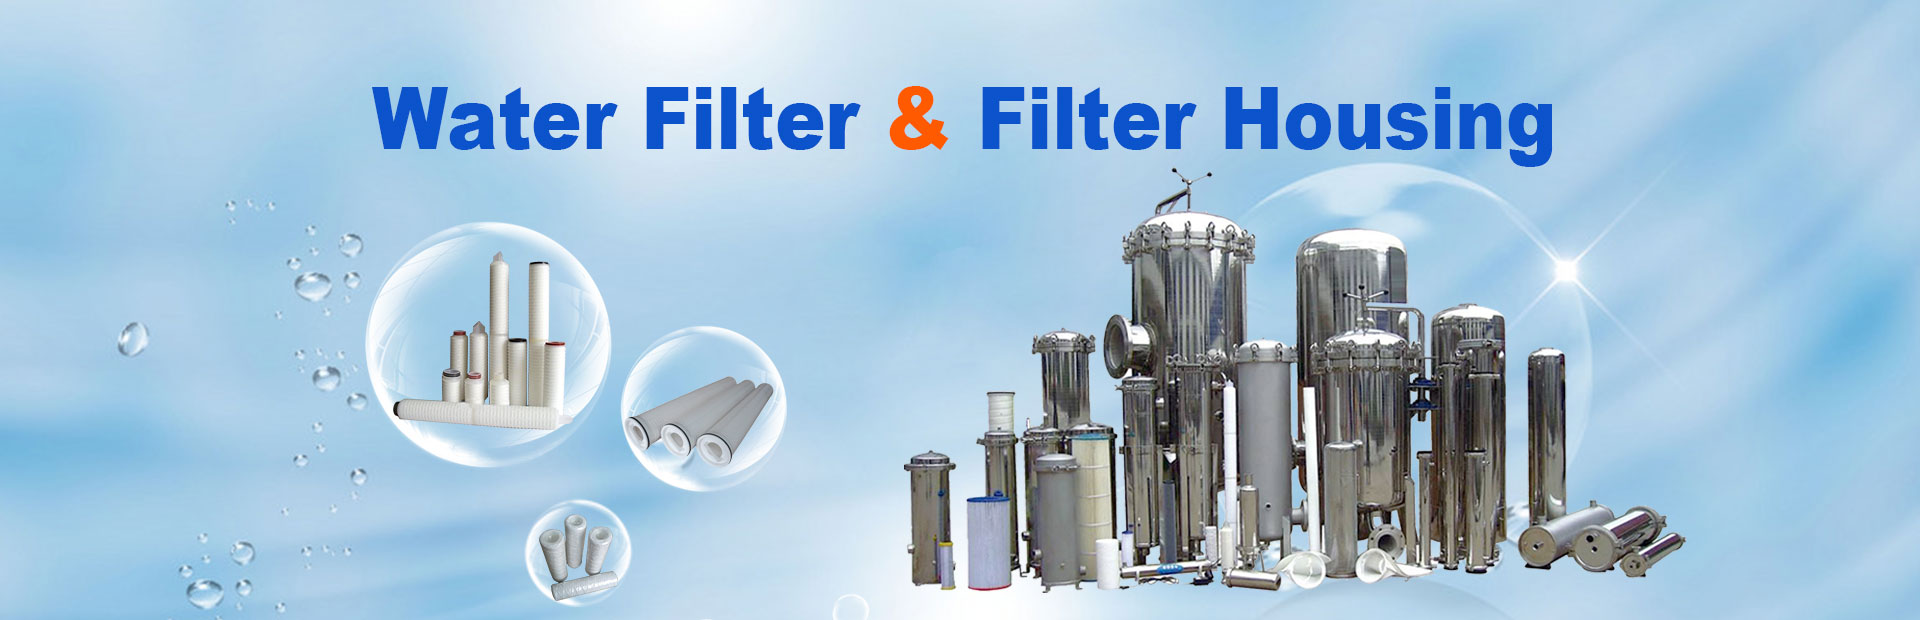 Air Filtration Series